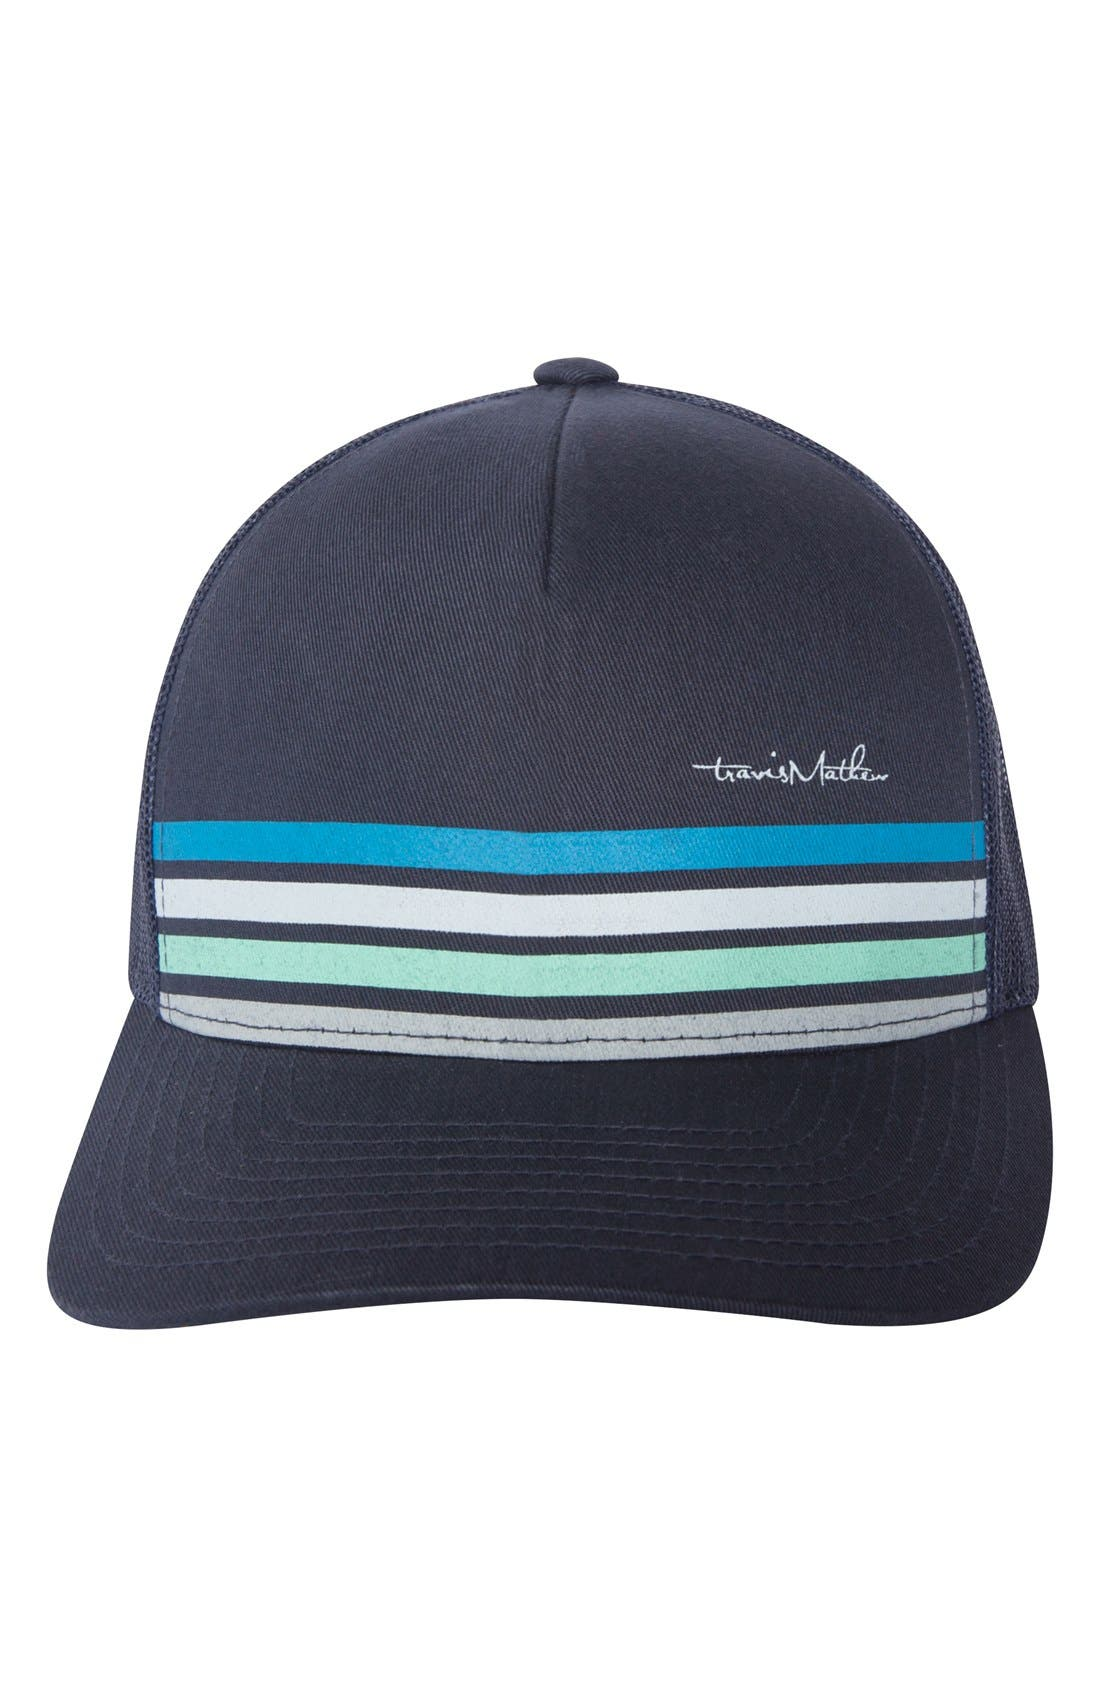 Travis Mathew 'Hoover' Hat